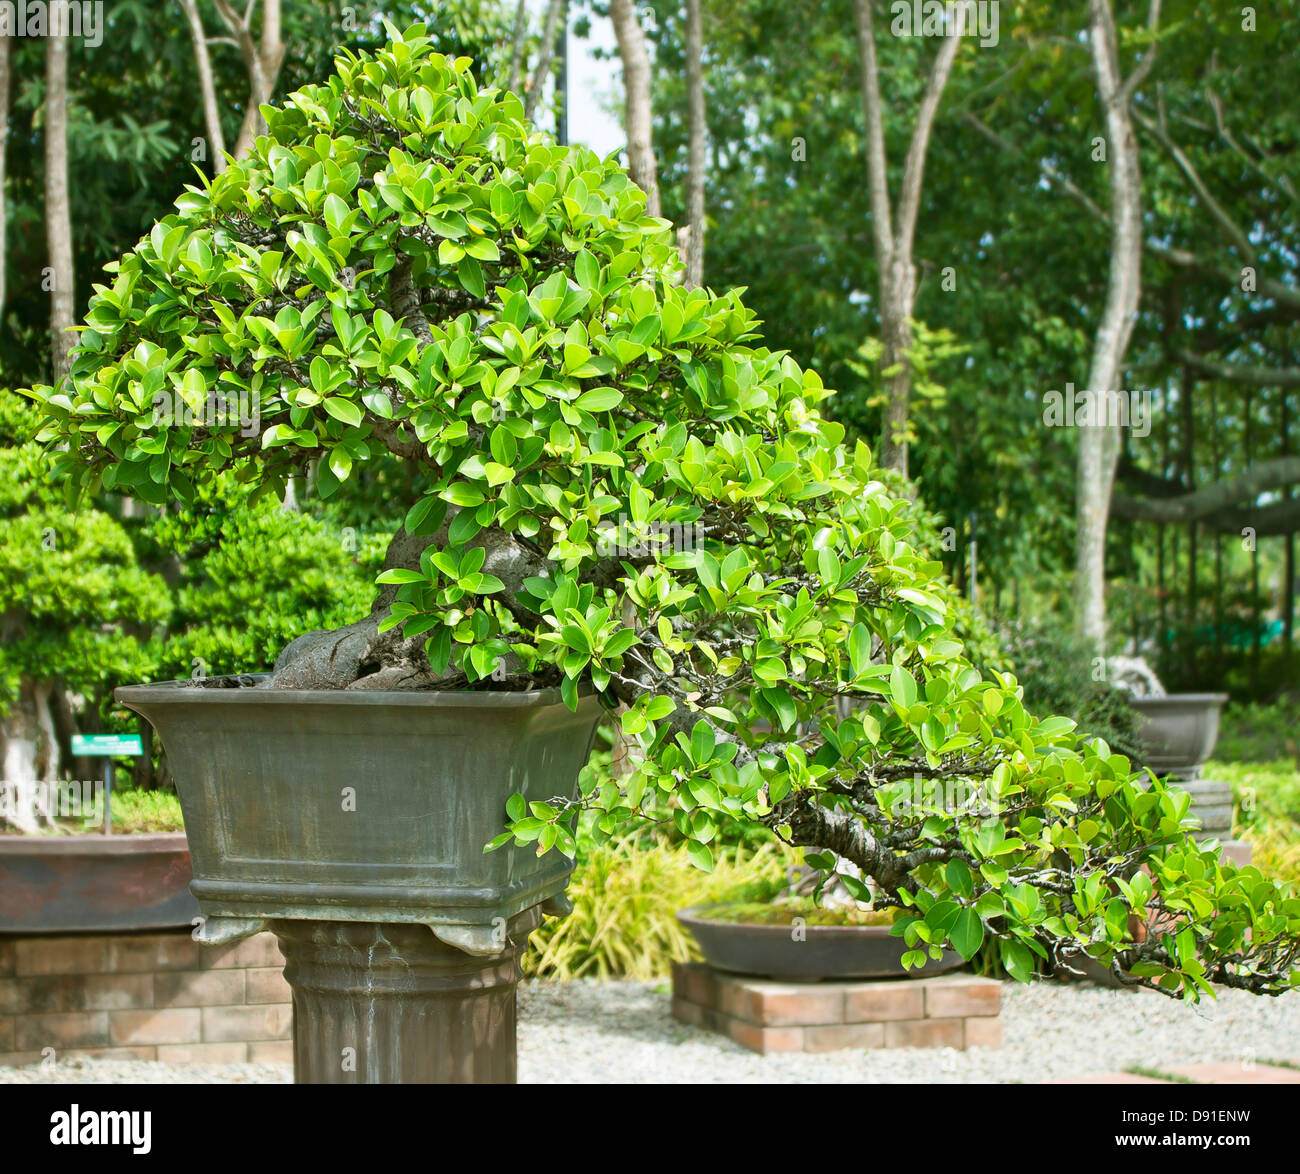 trees in pots stockfotos trees in pots bilder alamy. Black Bedroom Furniture Sets. Home Design Ideas